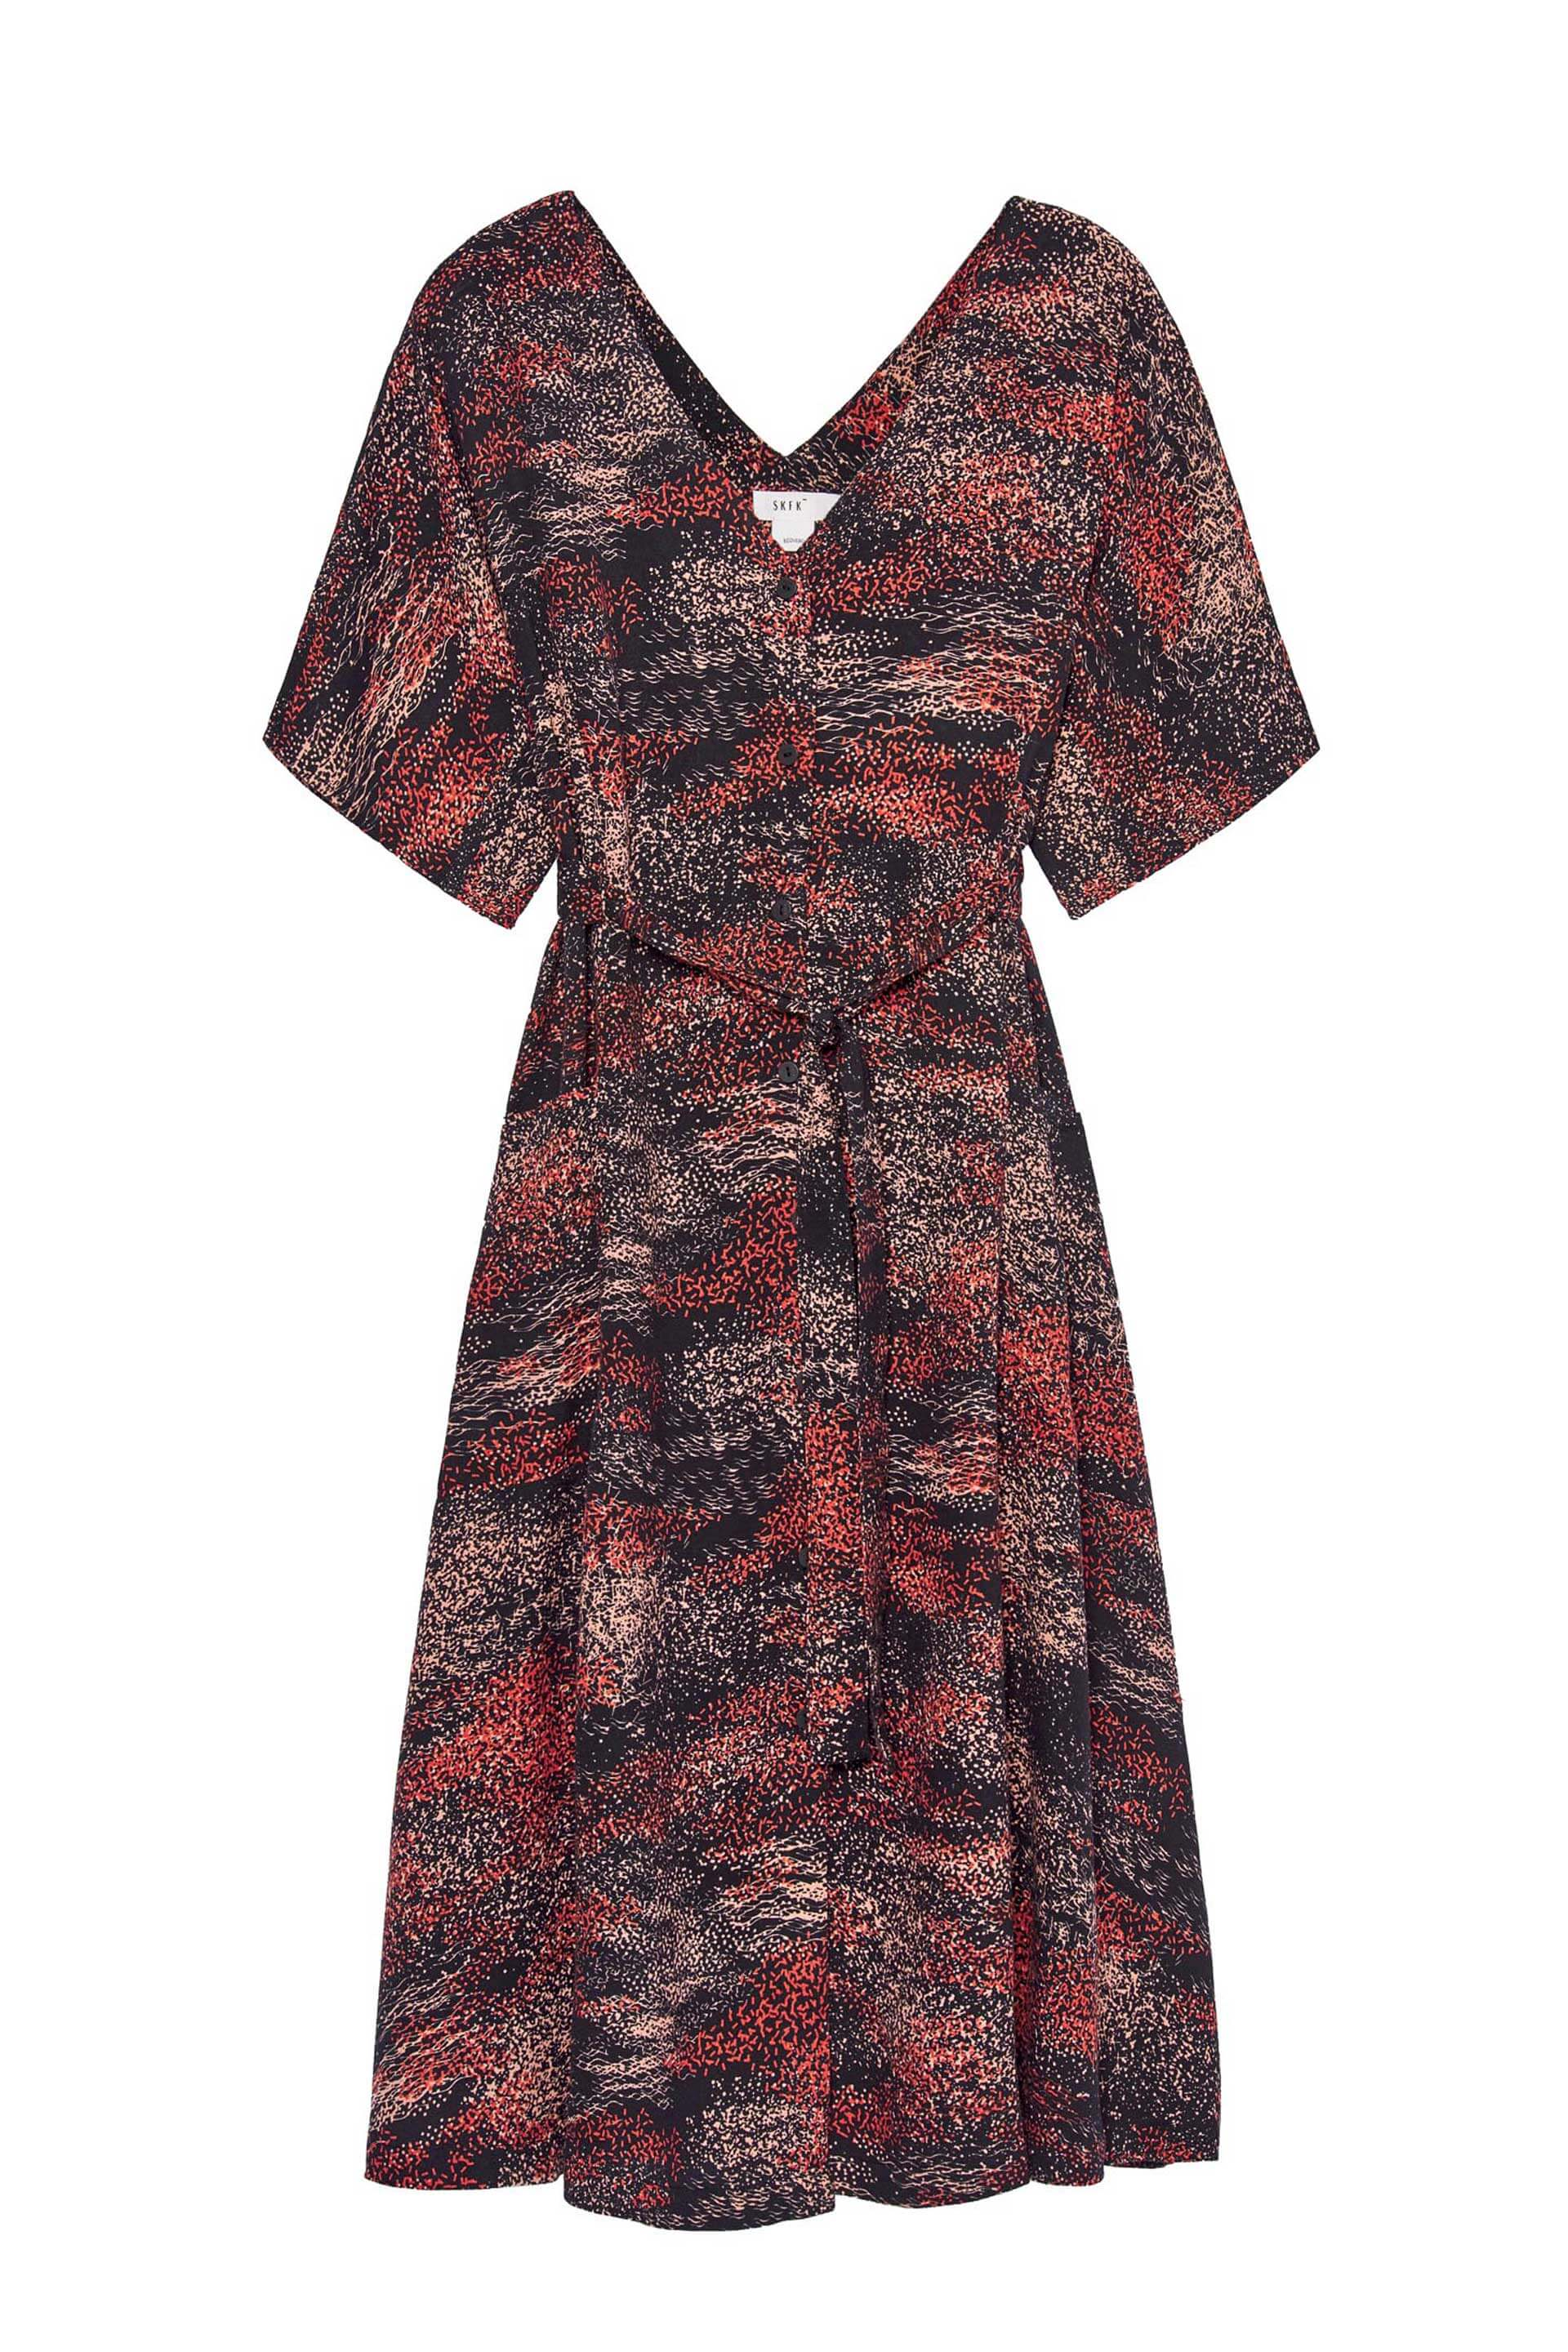 Nahikari Ecovero Dress by Spanish eco-brand SKFK Skunkfunk WDR00881